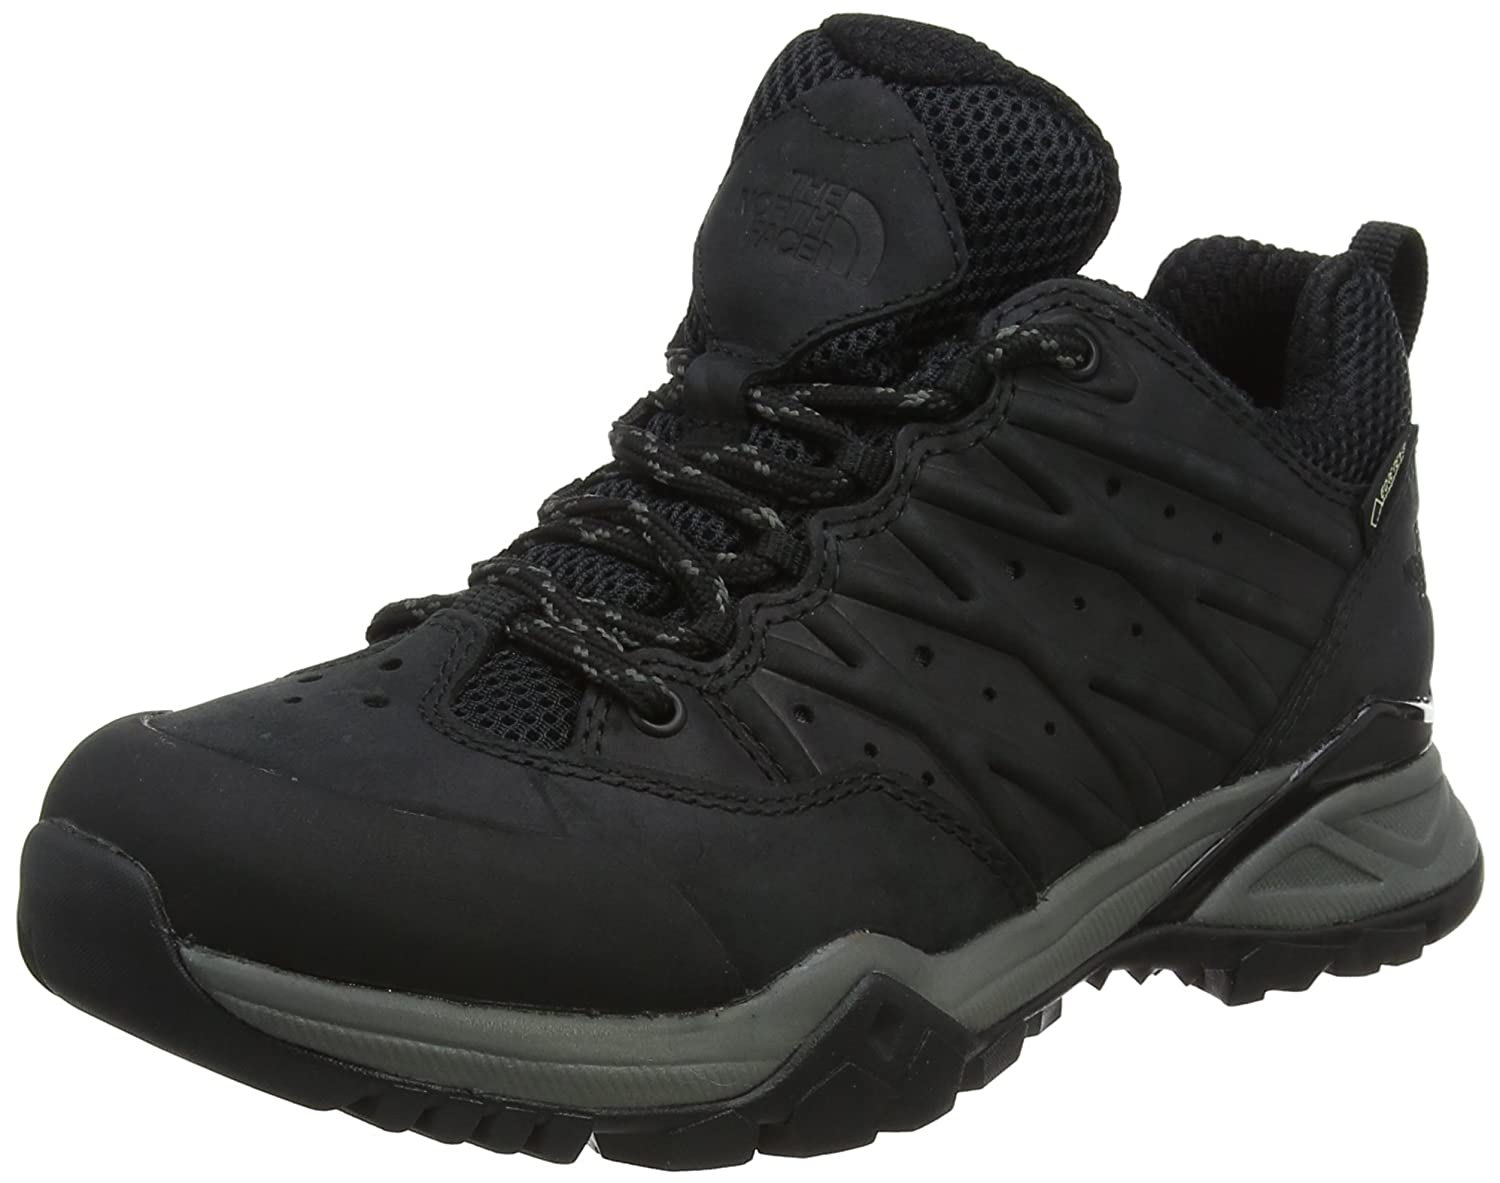 THE NORTH FACE Damen W Hh Hike Ii GTX Trekking-& Wanderhalbschuhe